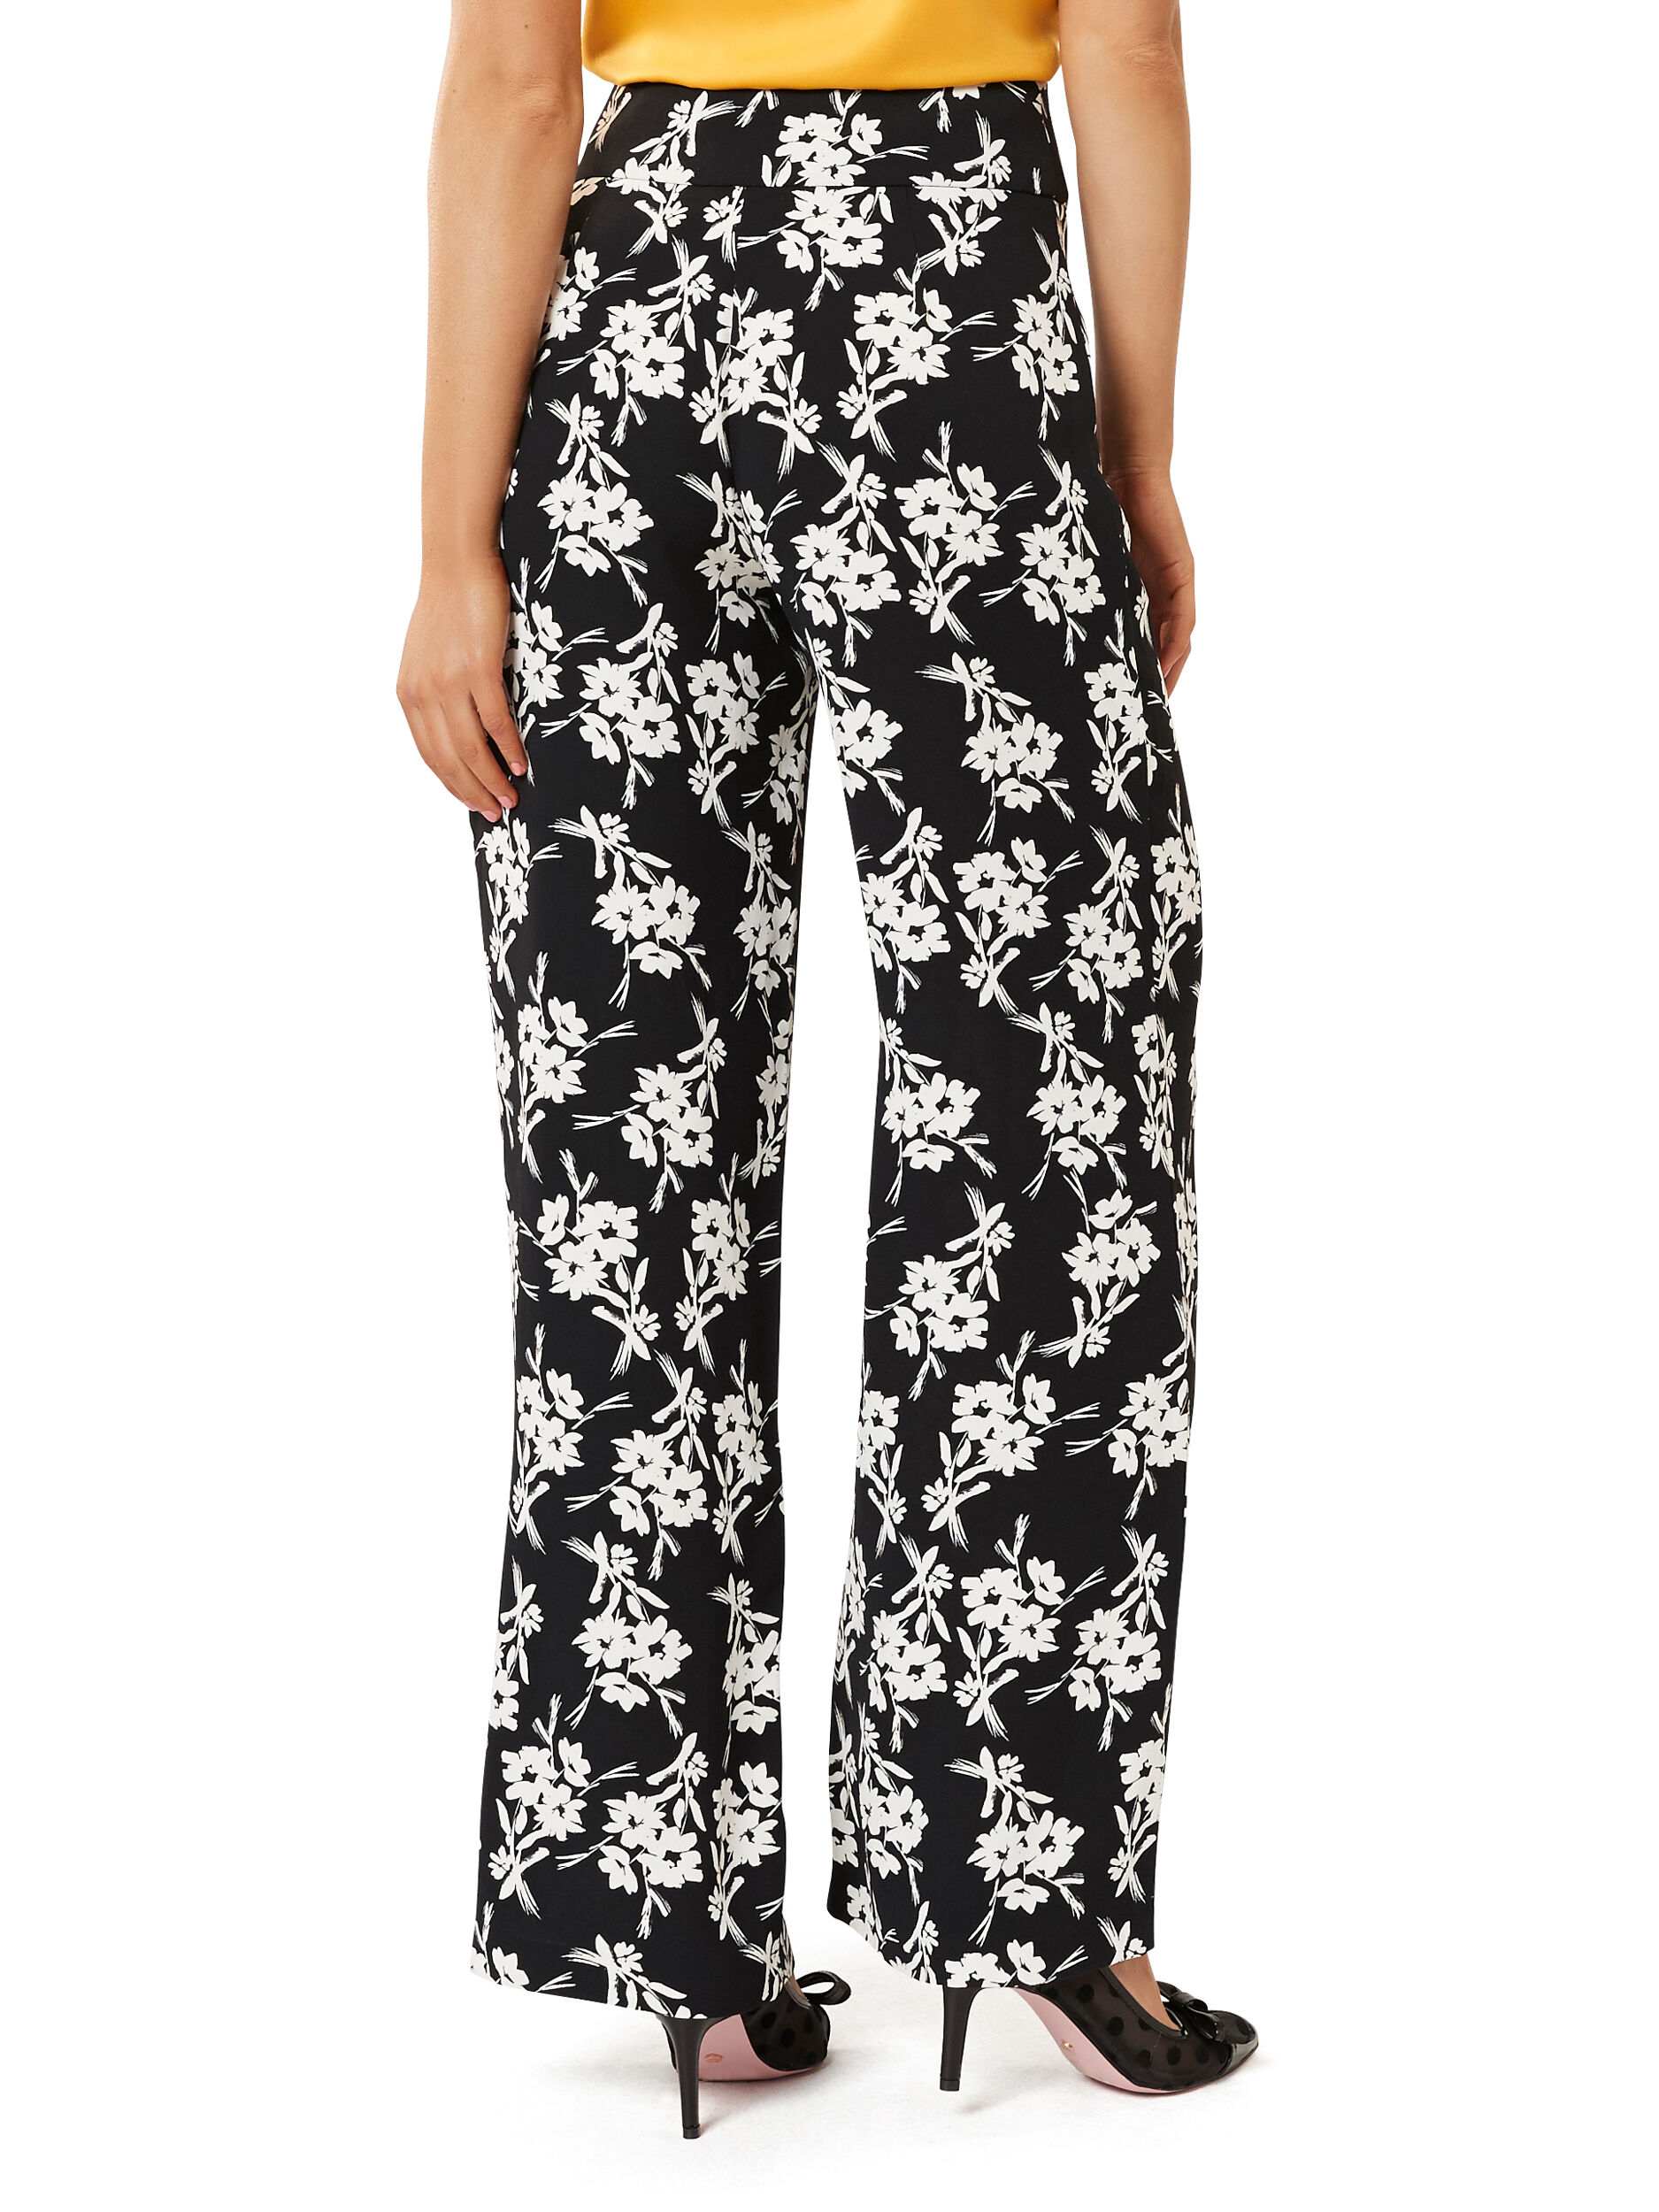 Rosemary Floral Pants